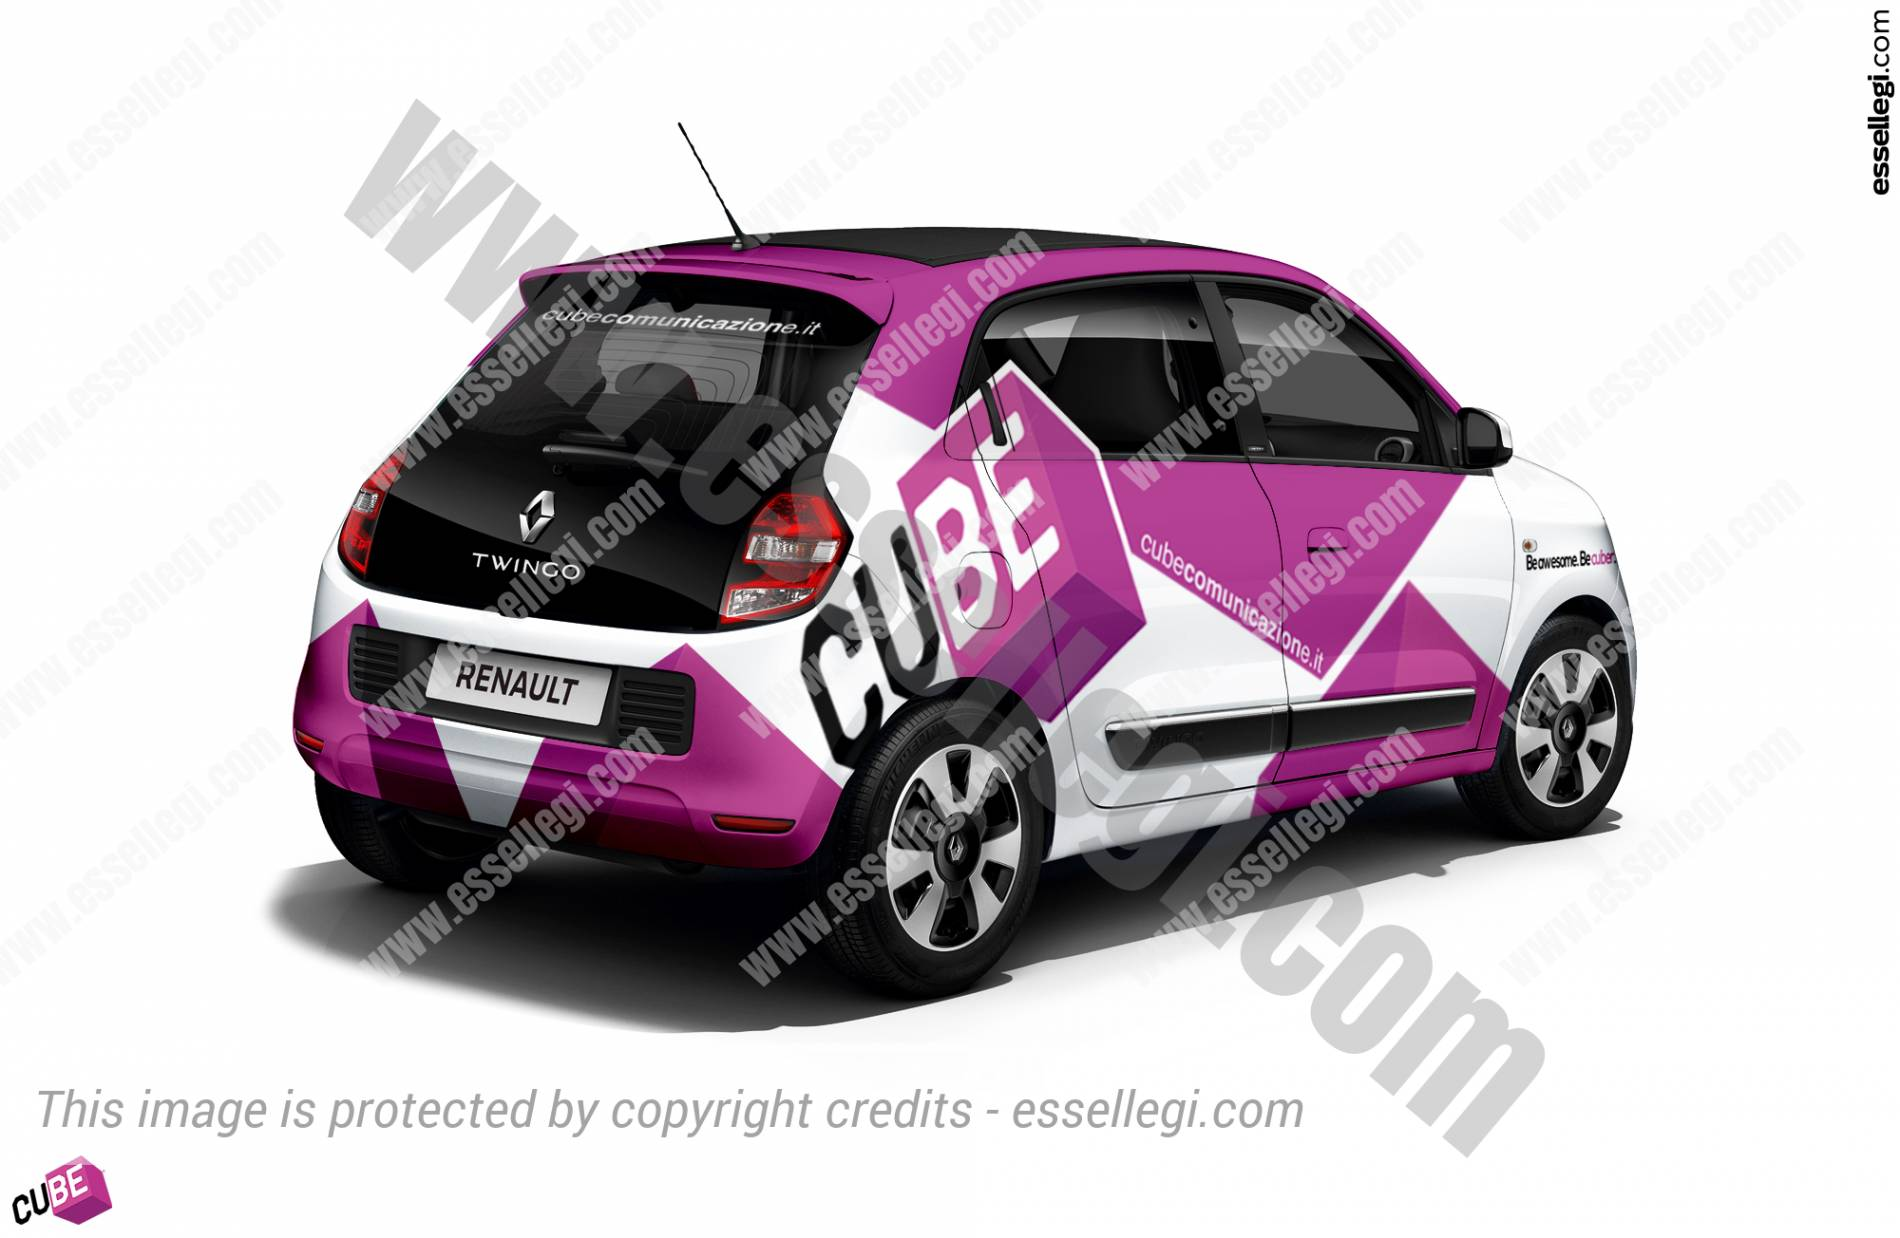 Renault Twingo Wrap Design. Renault Twingo | Car Wrap Design by Essellegi. Car Signs, Car Signage, Car Signwriting, Car Wrap Designer, Car Graphic, Custom Vehicle Signage, Car Wrap Design by Essellegi.